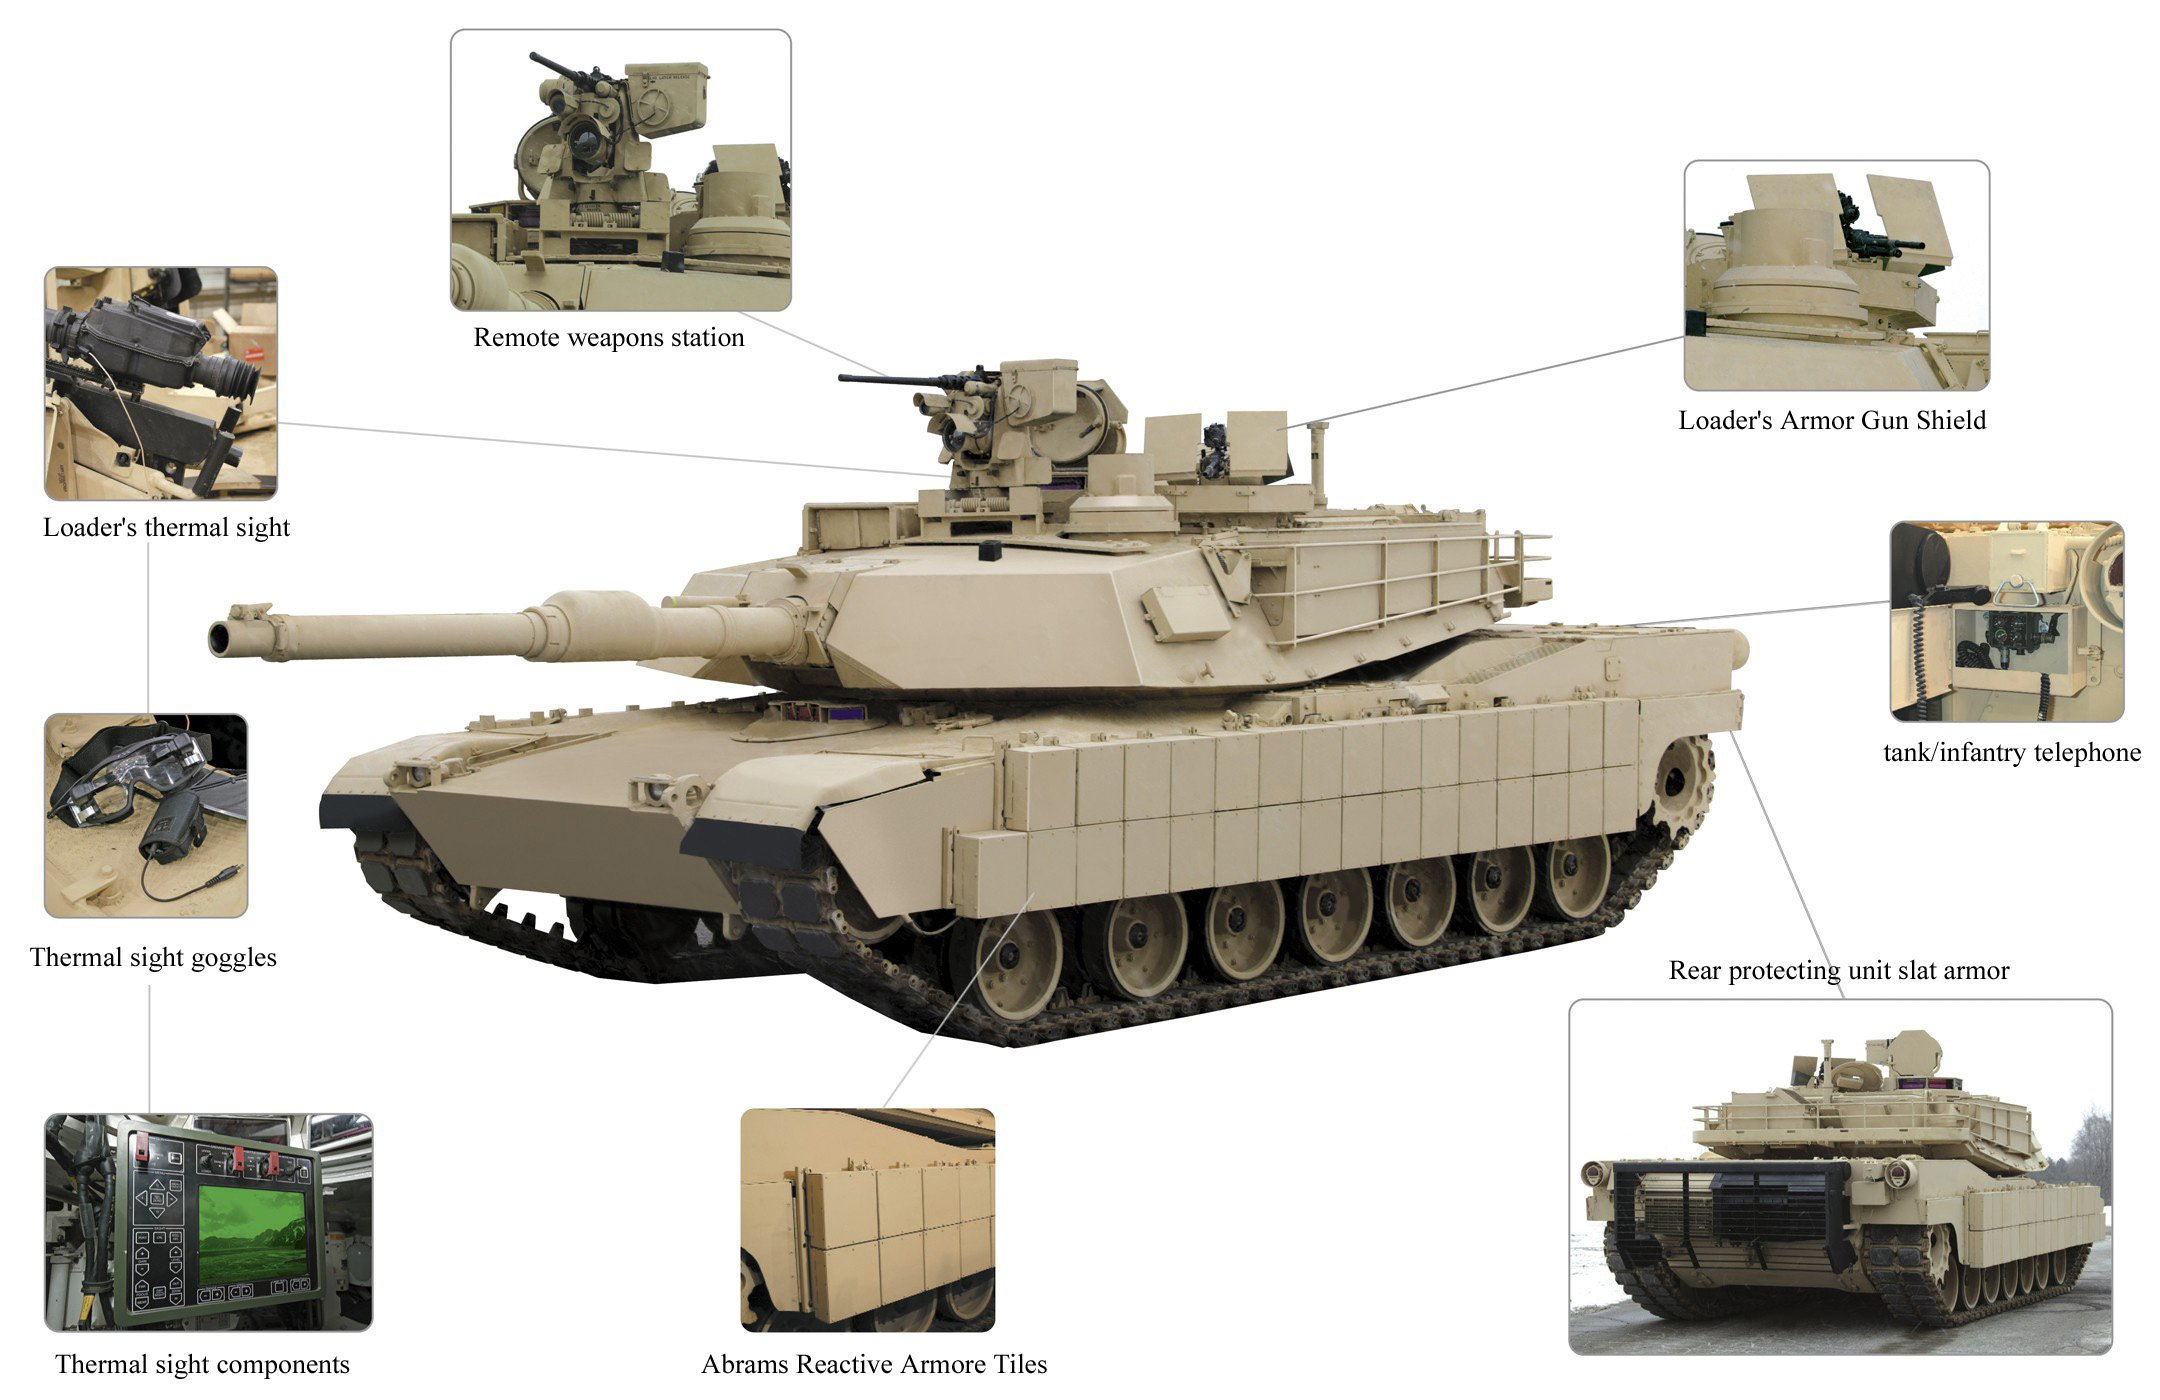 M1A2 Abrams MBT (Main Battle Tank) with TUSK (Tactical Urban Survival Kit)